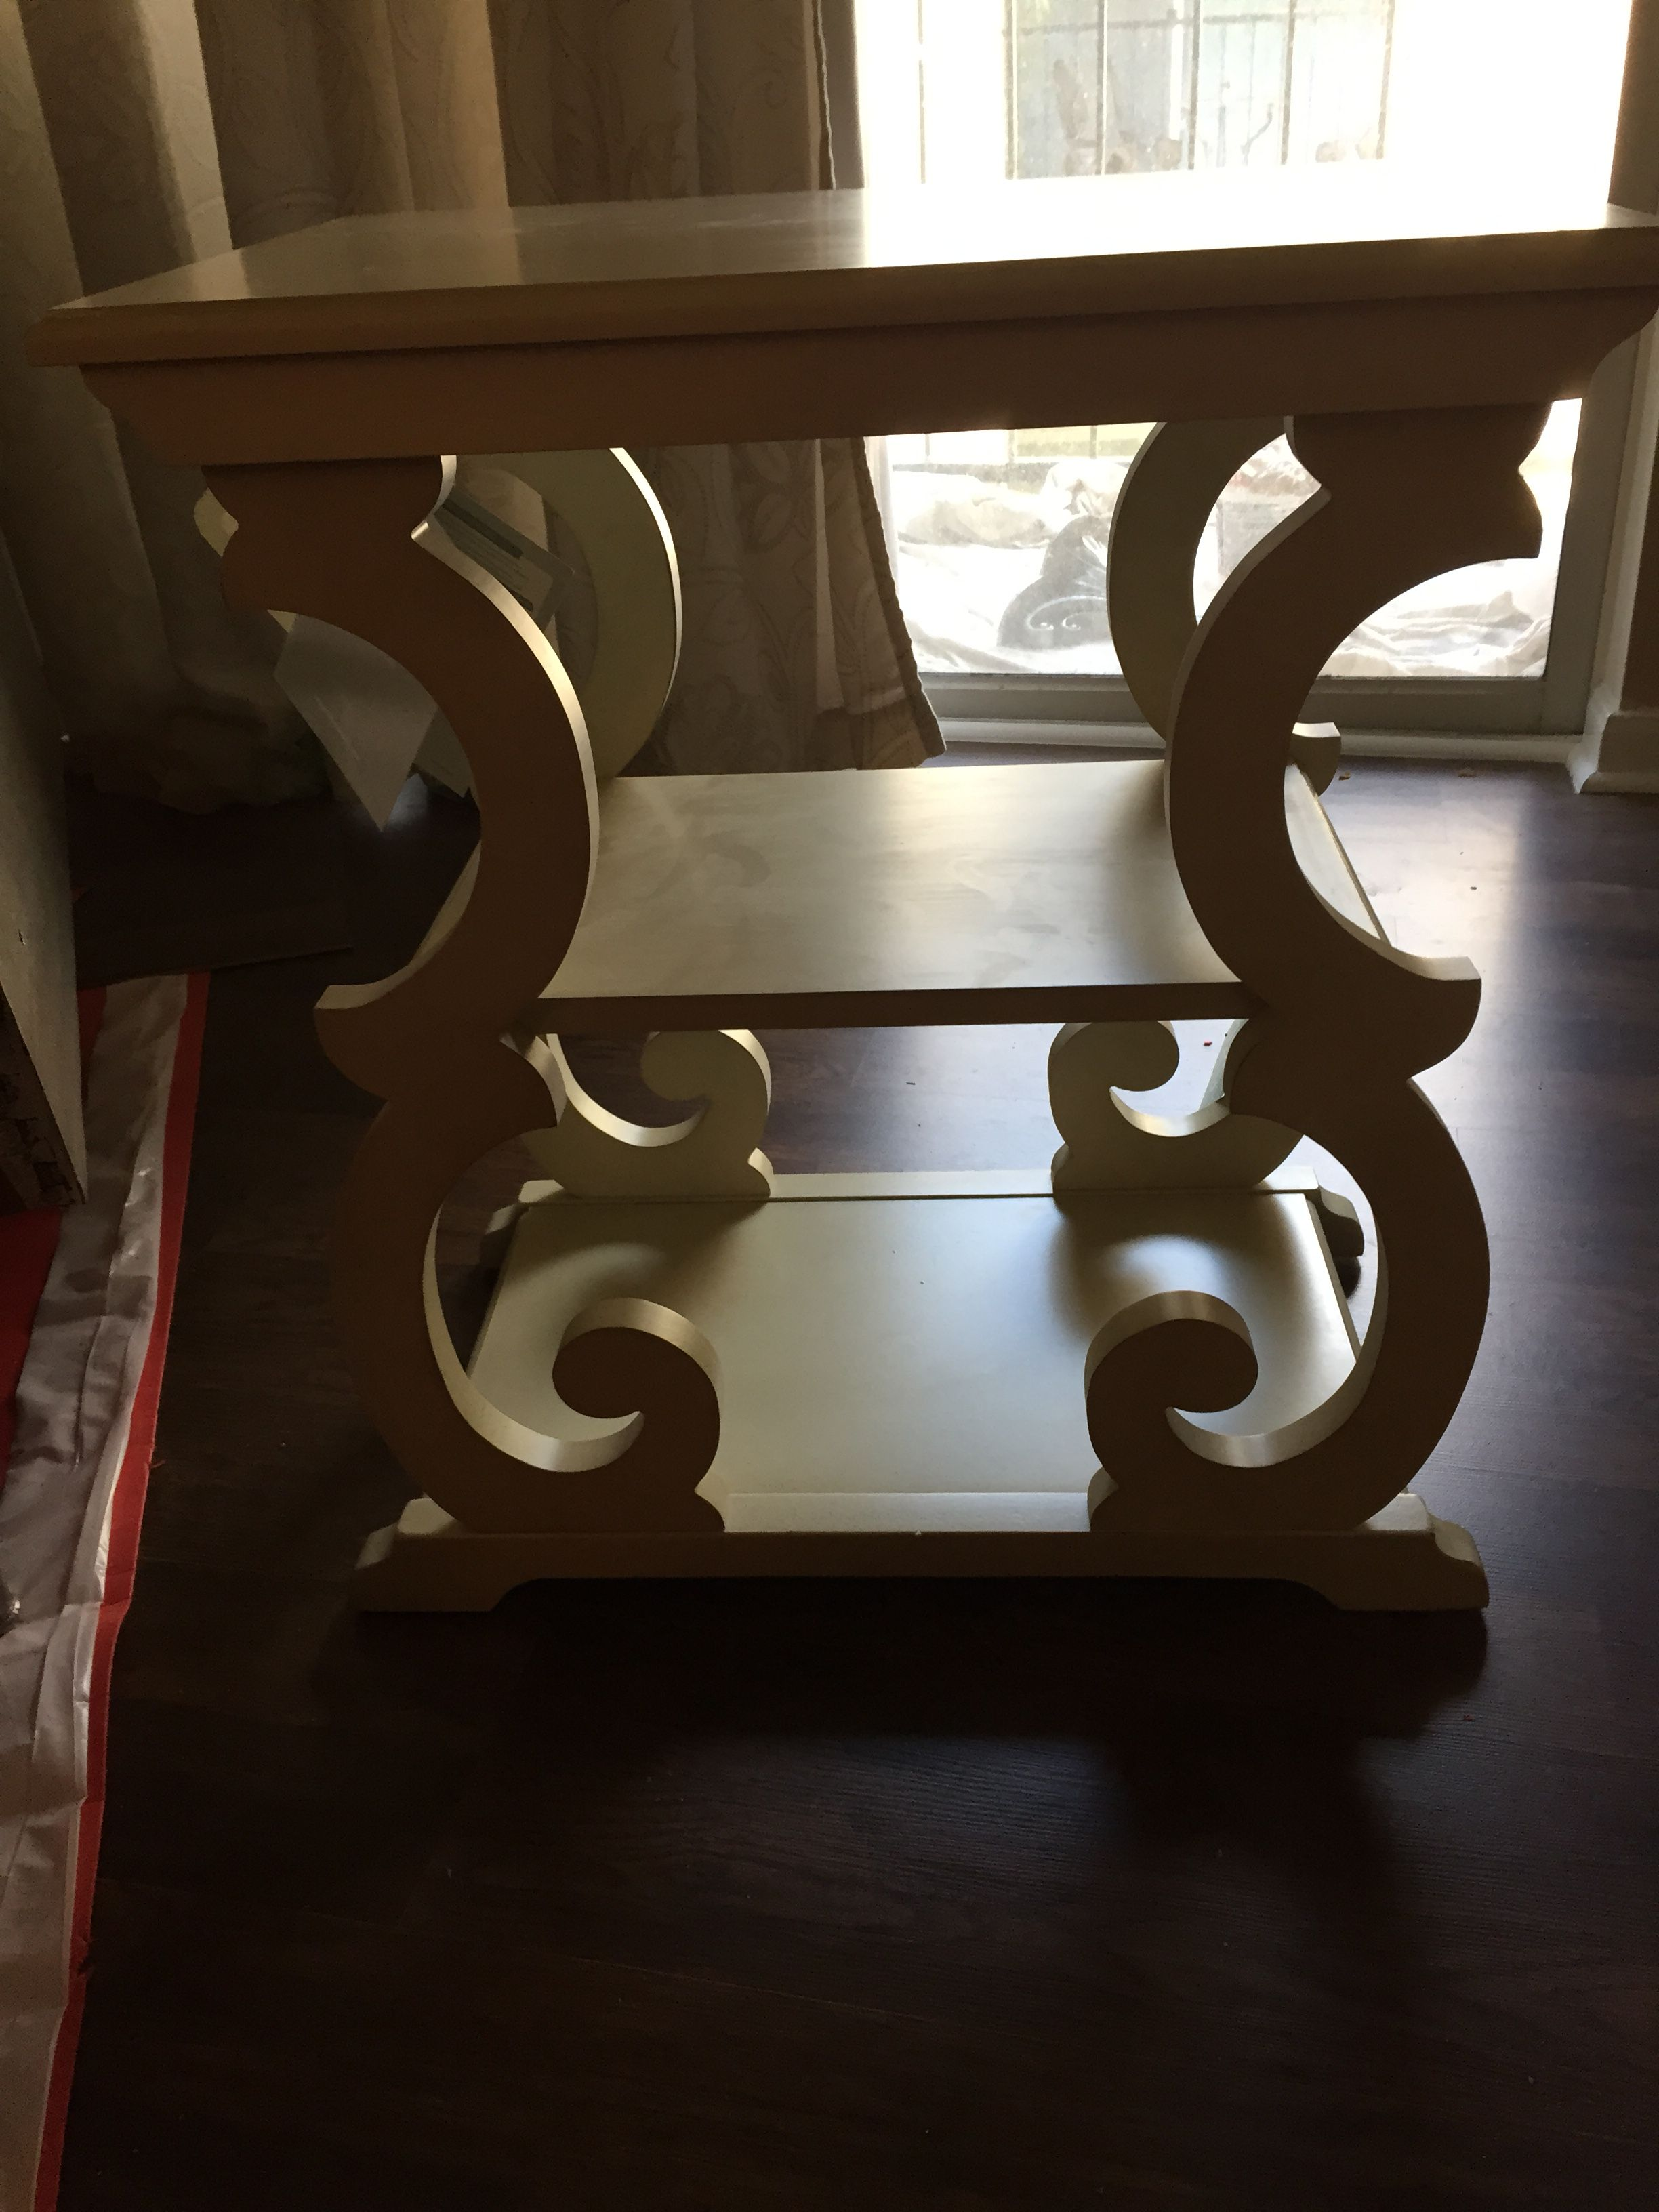 Broyhill Chairs At Homegoods.New End Tables For Living Room Broyhill Furniture Going To Chalk